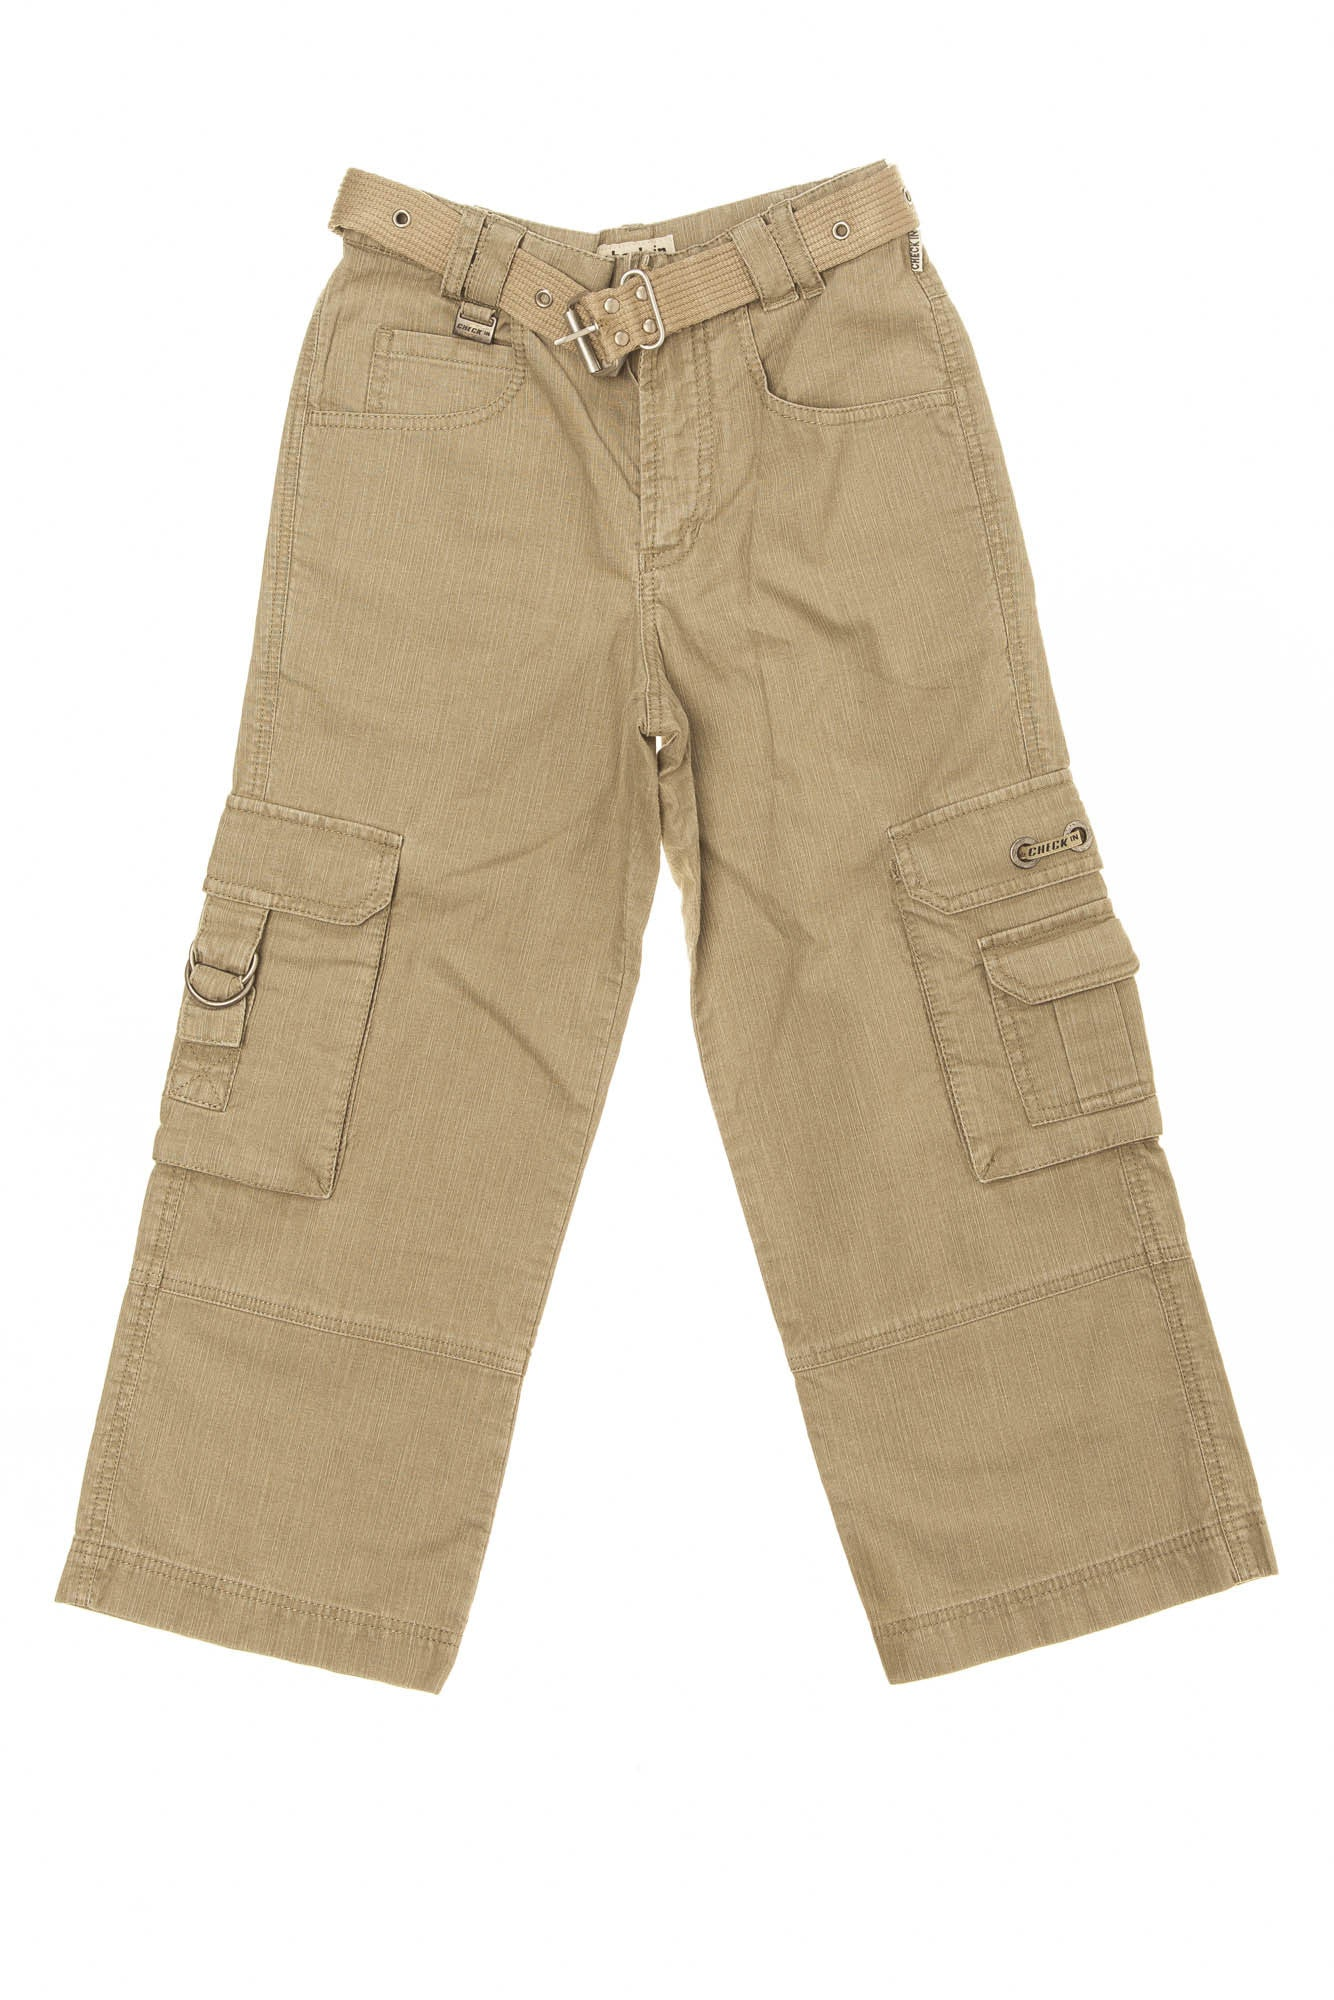 aac686bbef Check In - Khaki Cargo Pants - 16 – LUXHAVE